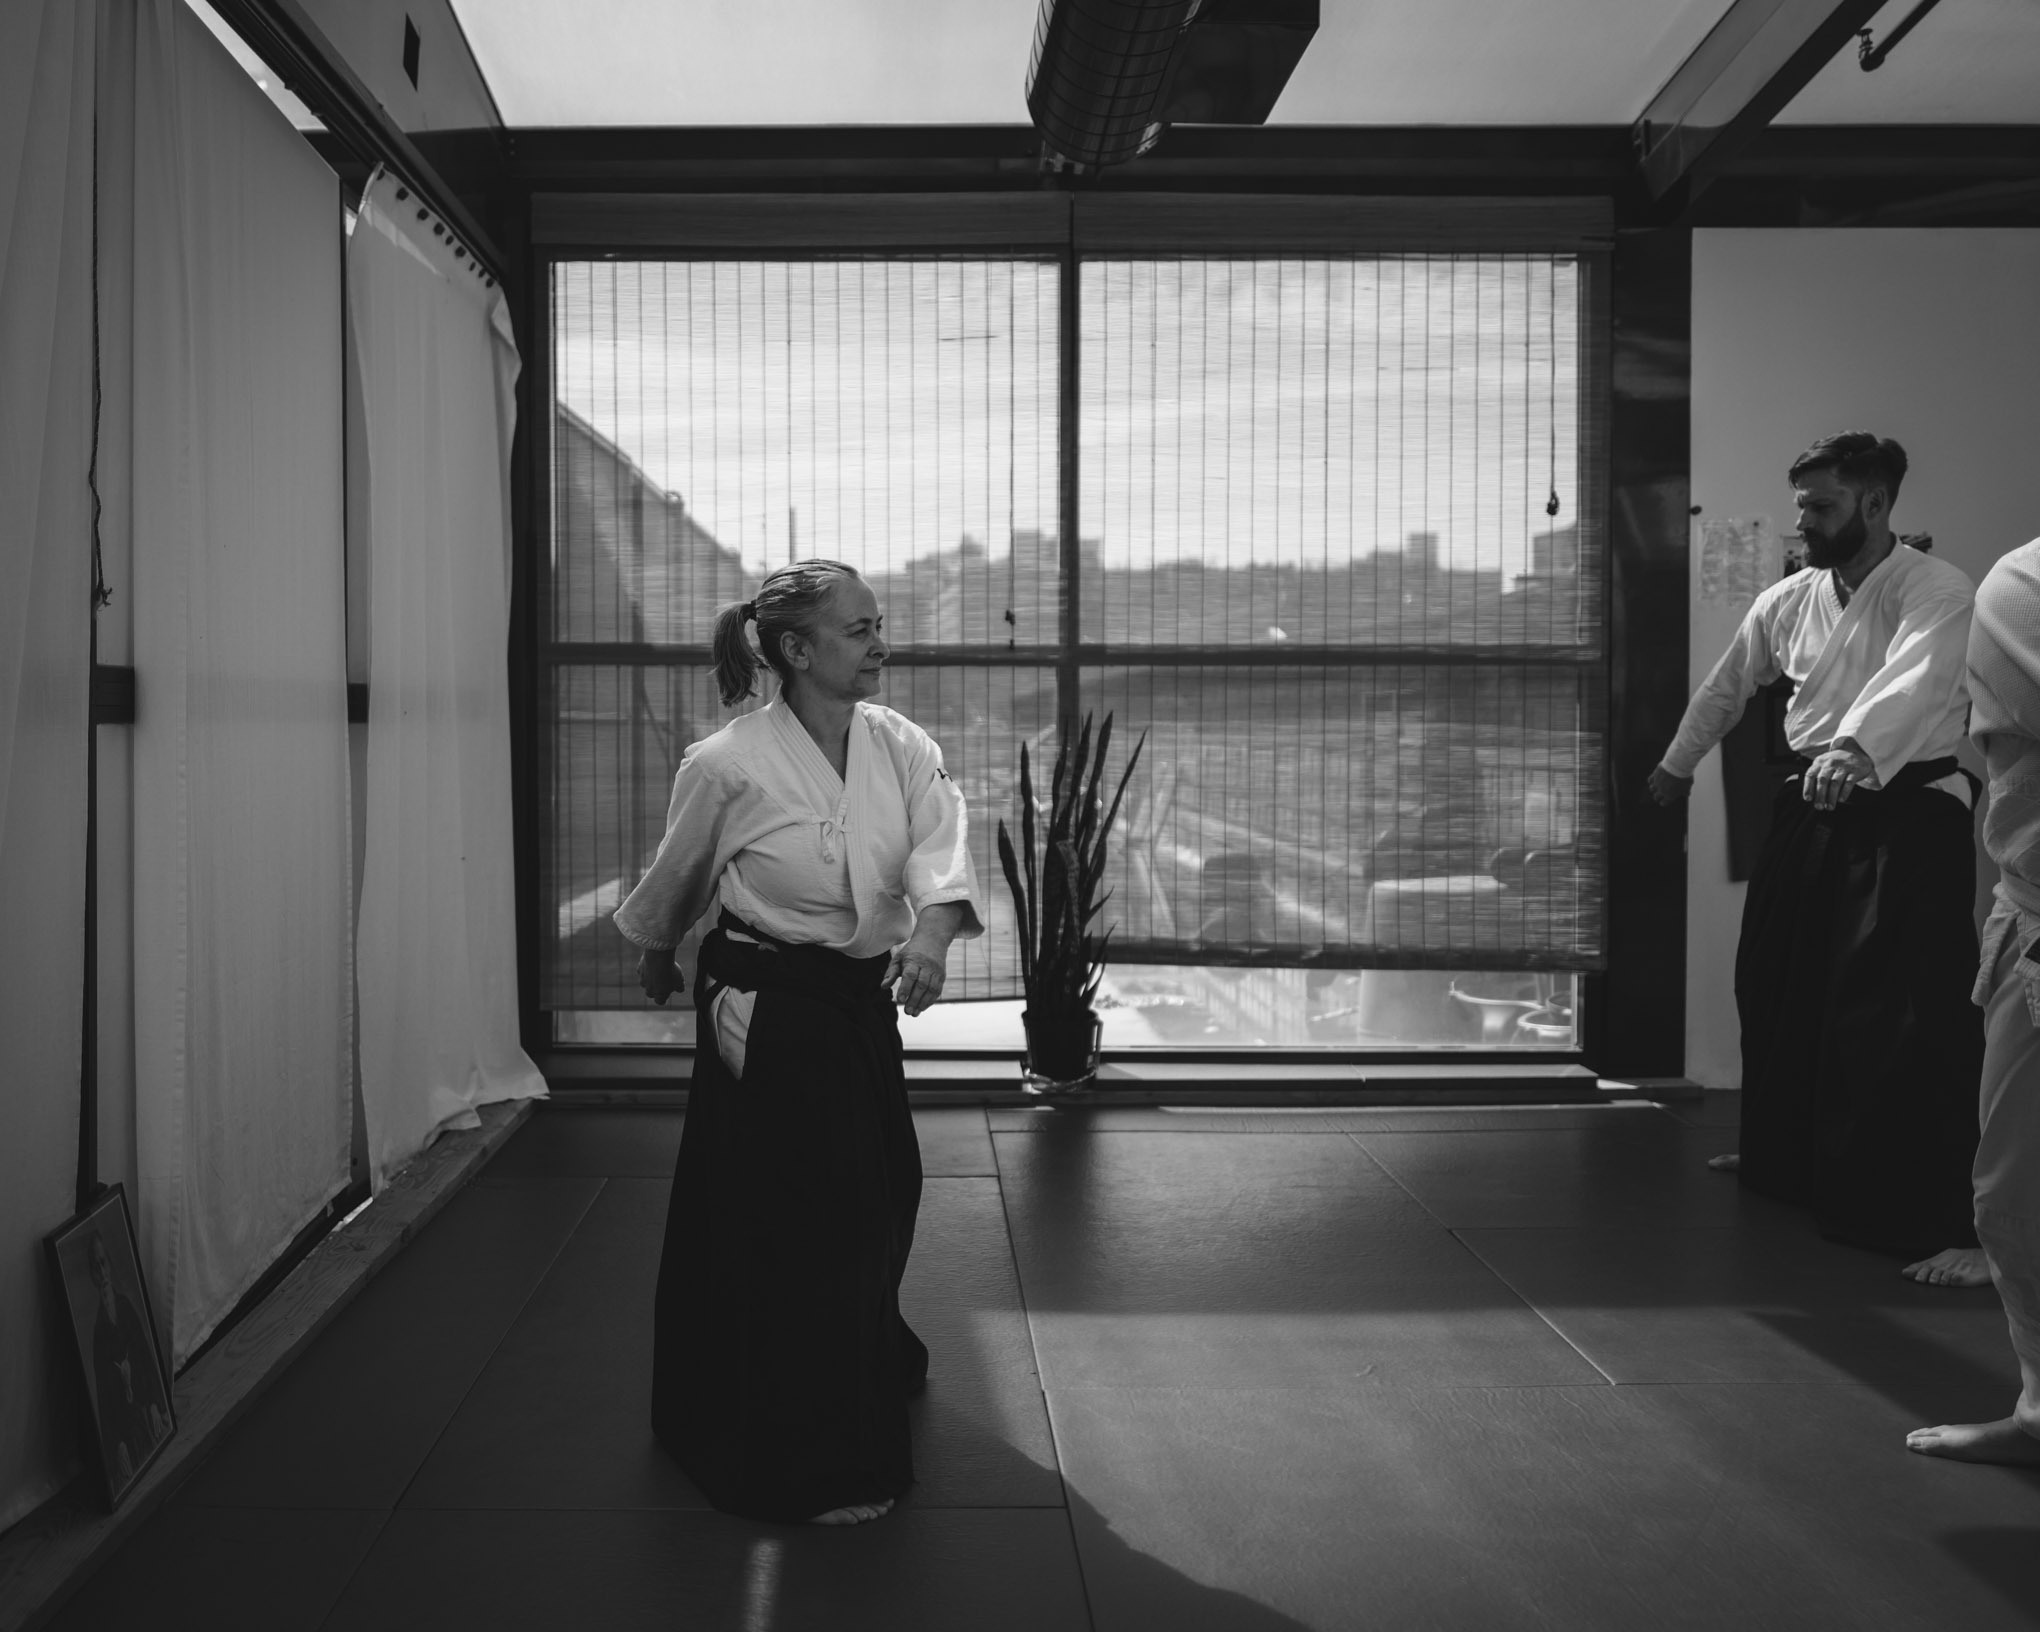 Claire Keller warms up at the beginning of an Aikido class at Bushwick Dojo in Brooklyn, New York